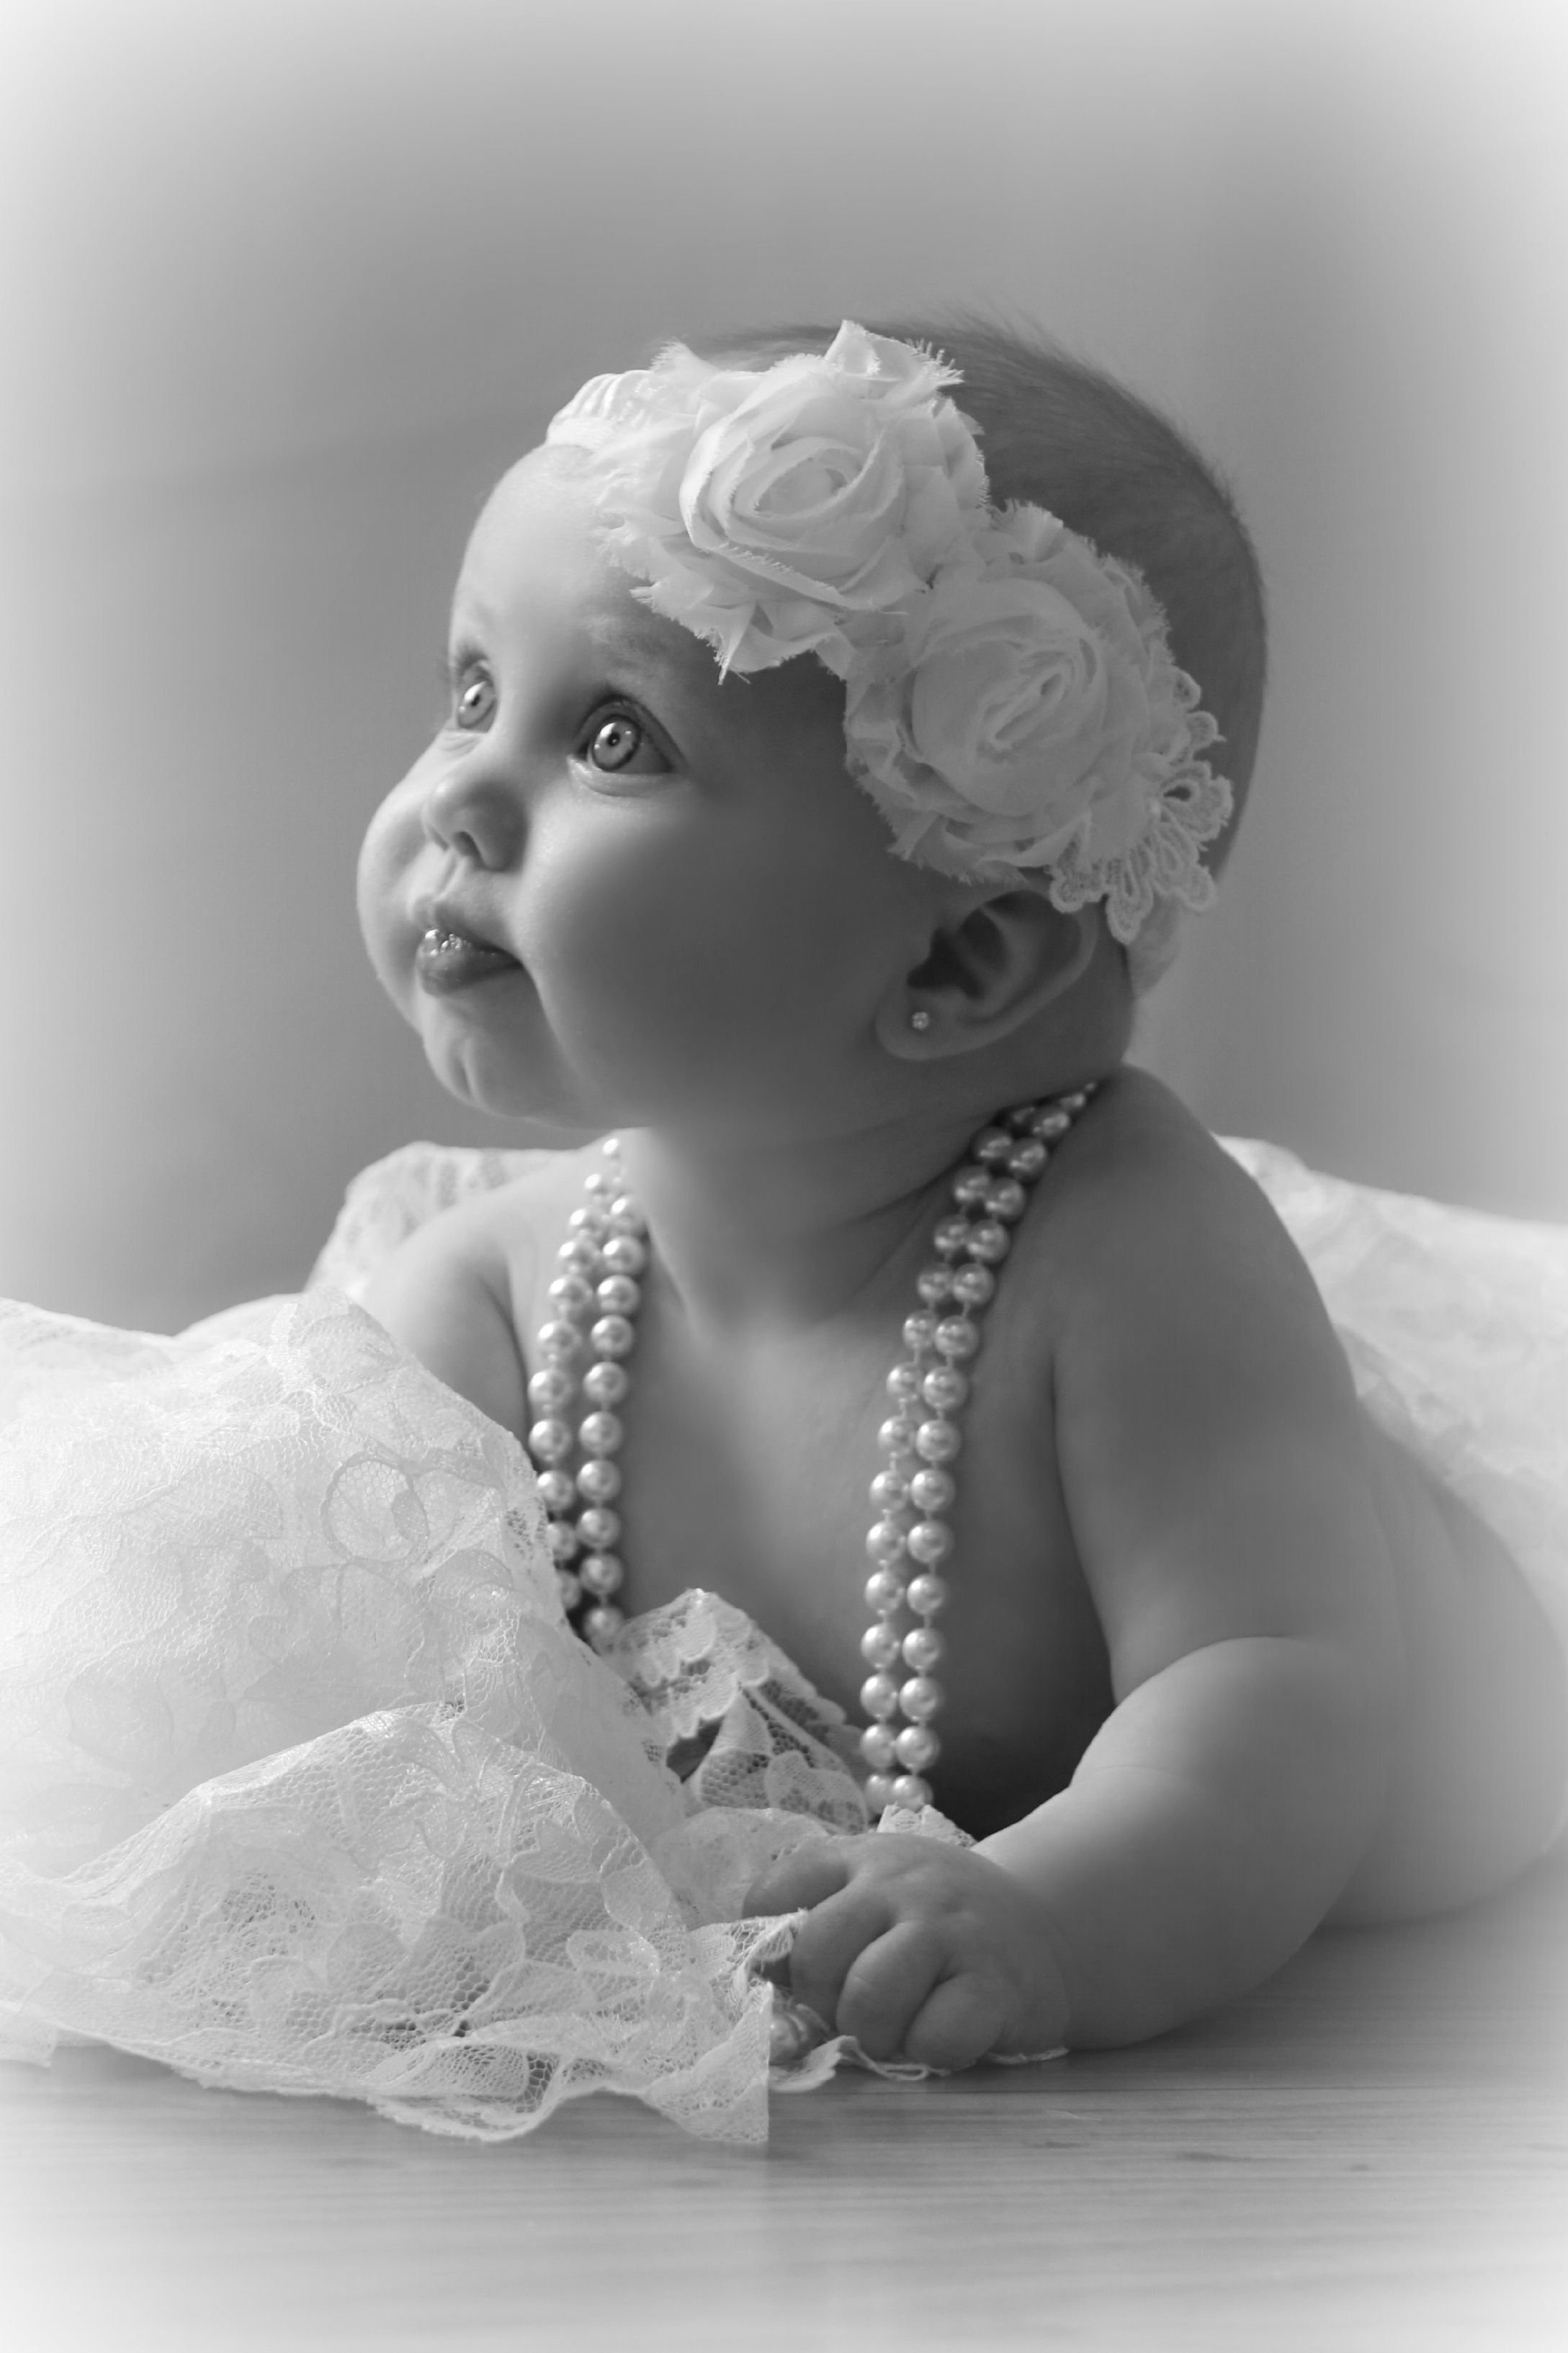 Breath taking 6 month old infant girl with lace and pearls by jpix